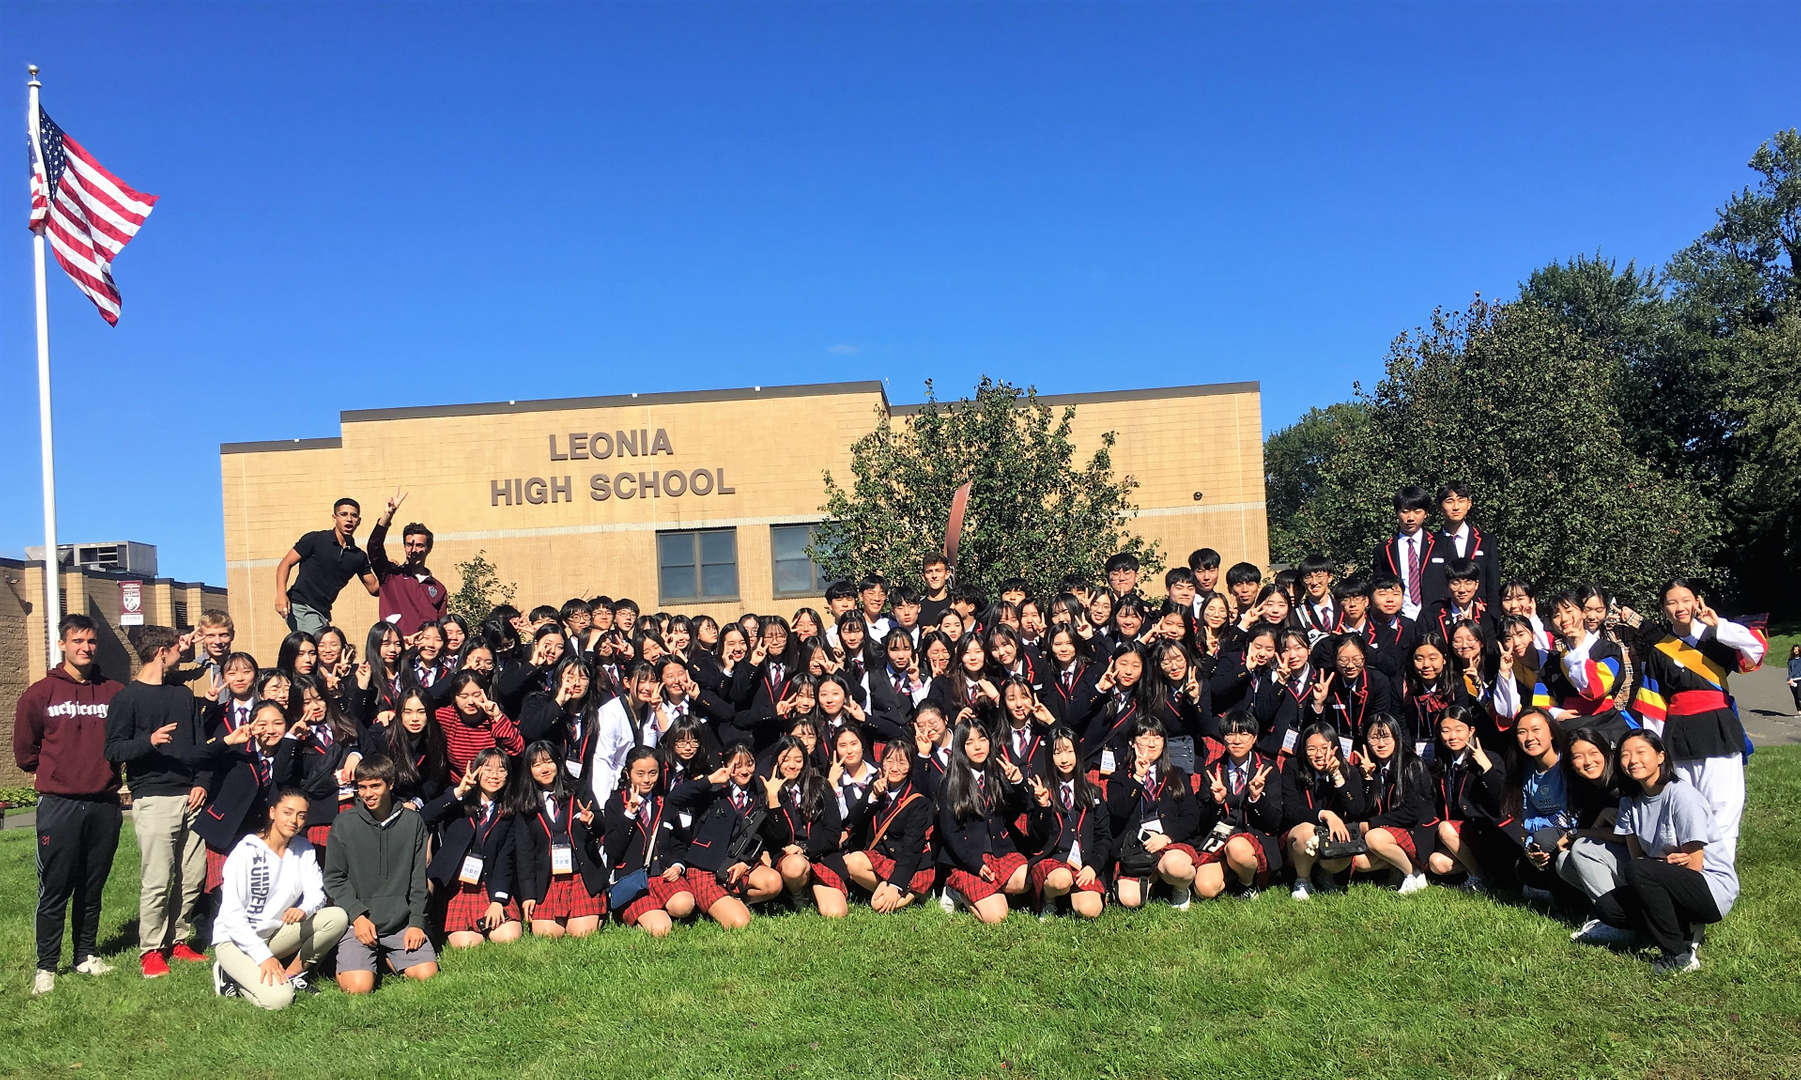 LHS had a visit of about 100 10th grade students and 5 educators from Dongtan Global High School in Korea.